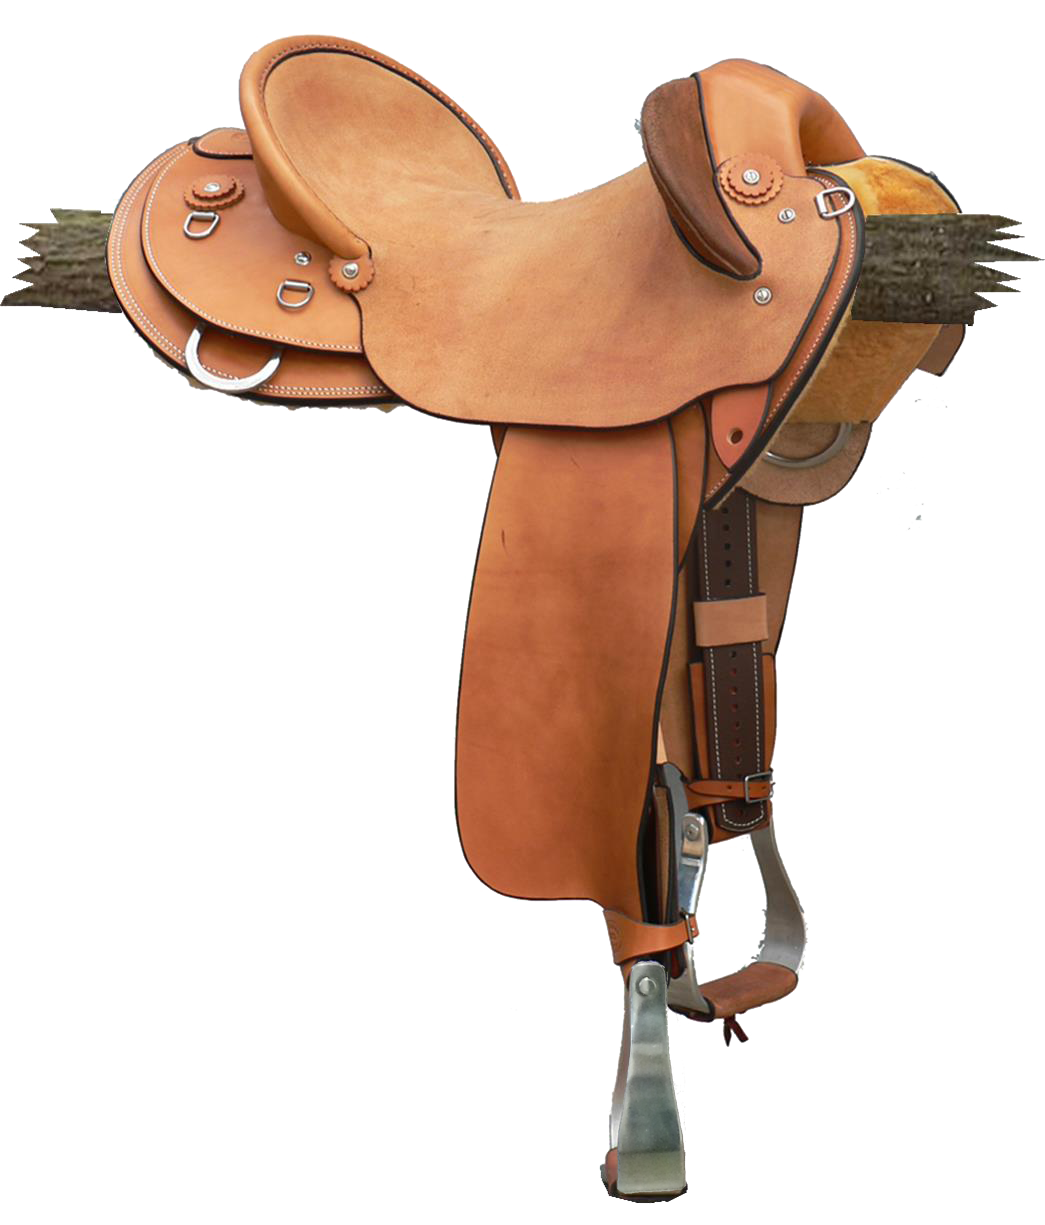 """Station Fender - This saddle made with:- Natural Leather- Stainless Steel Fittings- Leather Conchos- 'D' Rigging & JockeyAll saddles come fitted with Don Orrell 2"""" Flat Bottom Rancher Stirrups & Professional's Choice VenTECH Western Girth. Available add ons:- Flank-girth $275- Fully Padded Seat $440- Inlay Seat $220Enquire Now."""